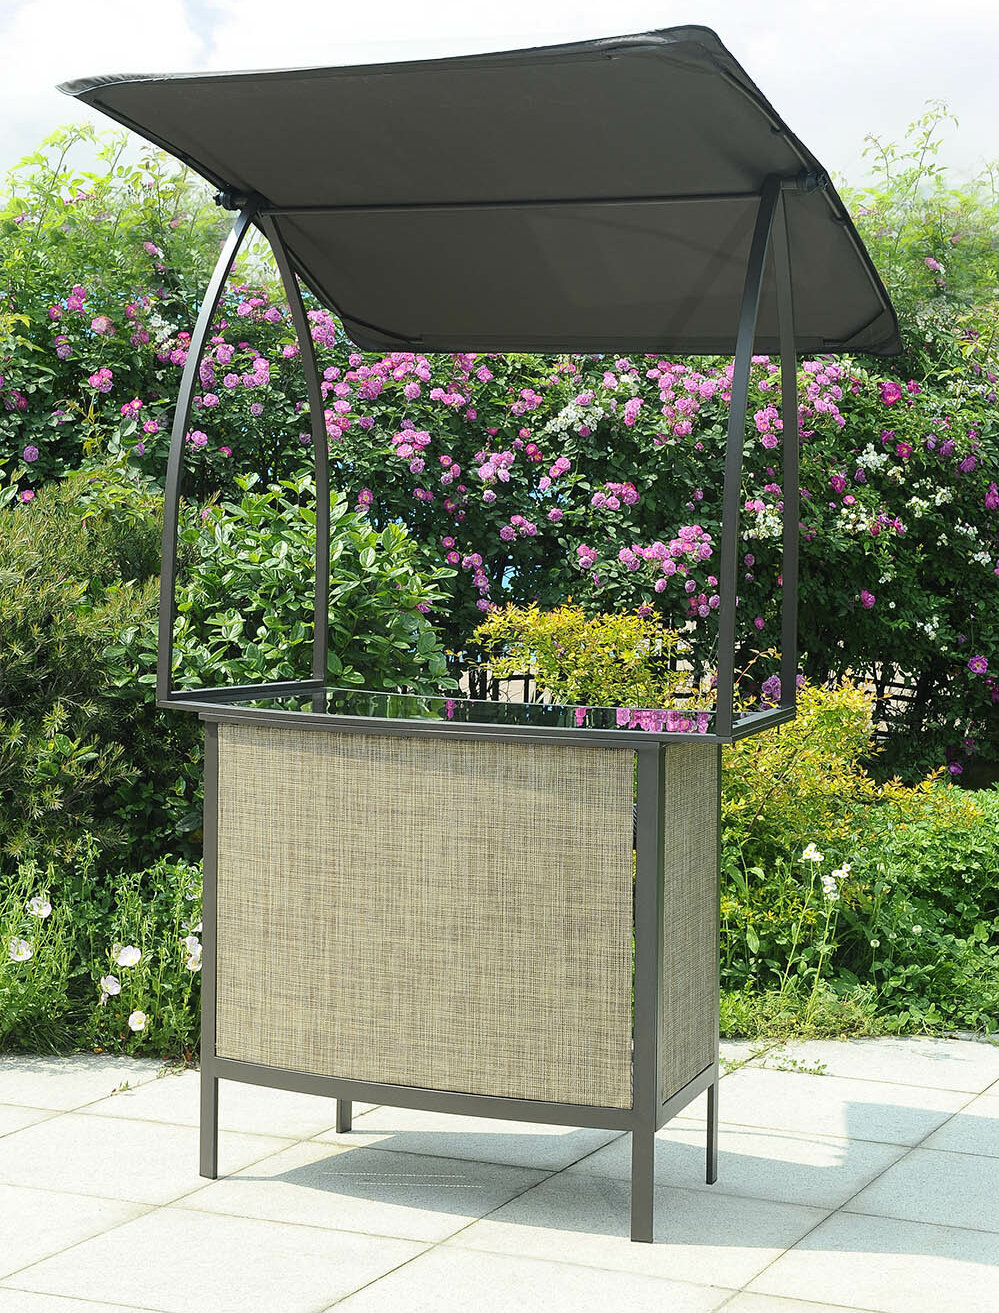 Sunjoy Replacement Canopy For 8u0027 W X 8u0027 D Adjustable Shade Pergola | Wayfair